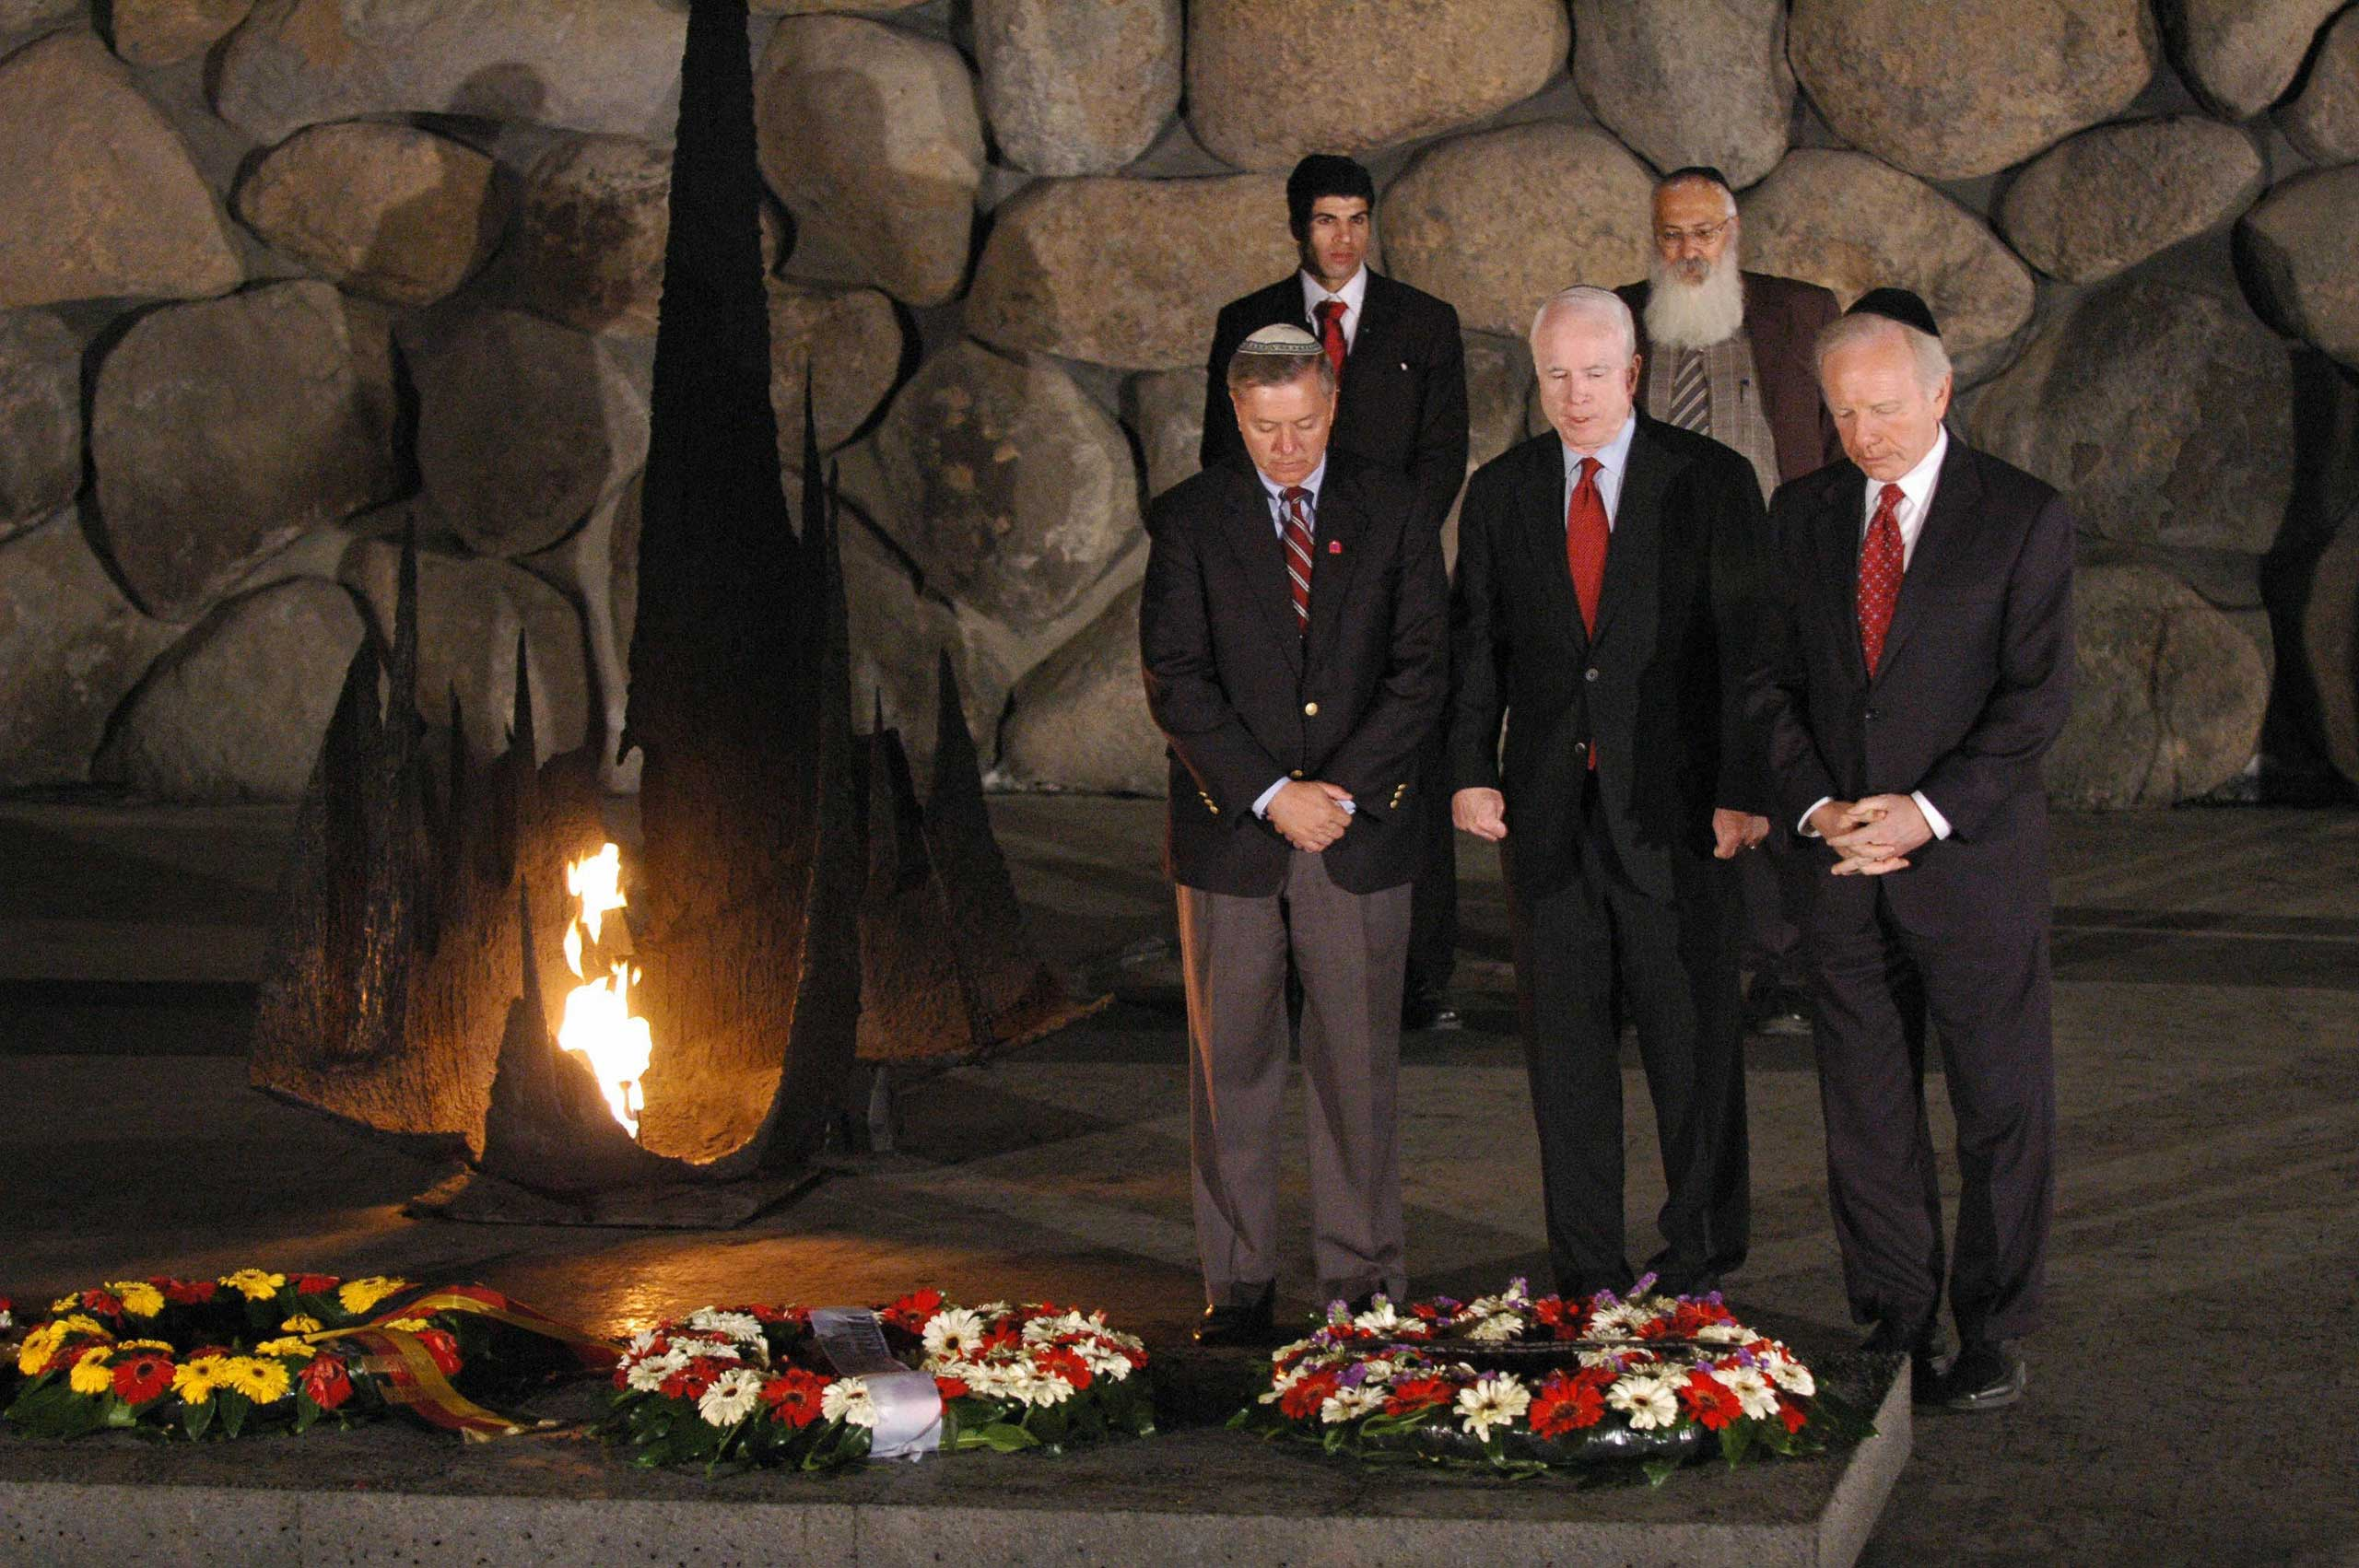 The three Senators, shown here laying a wreath at the Yad Vashem Holocaust museum in Jerusalem, also share strong support for Israel.